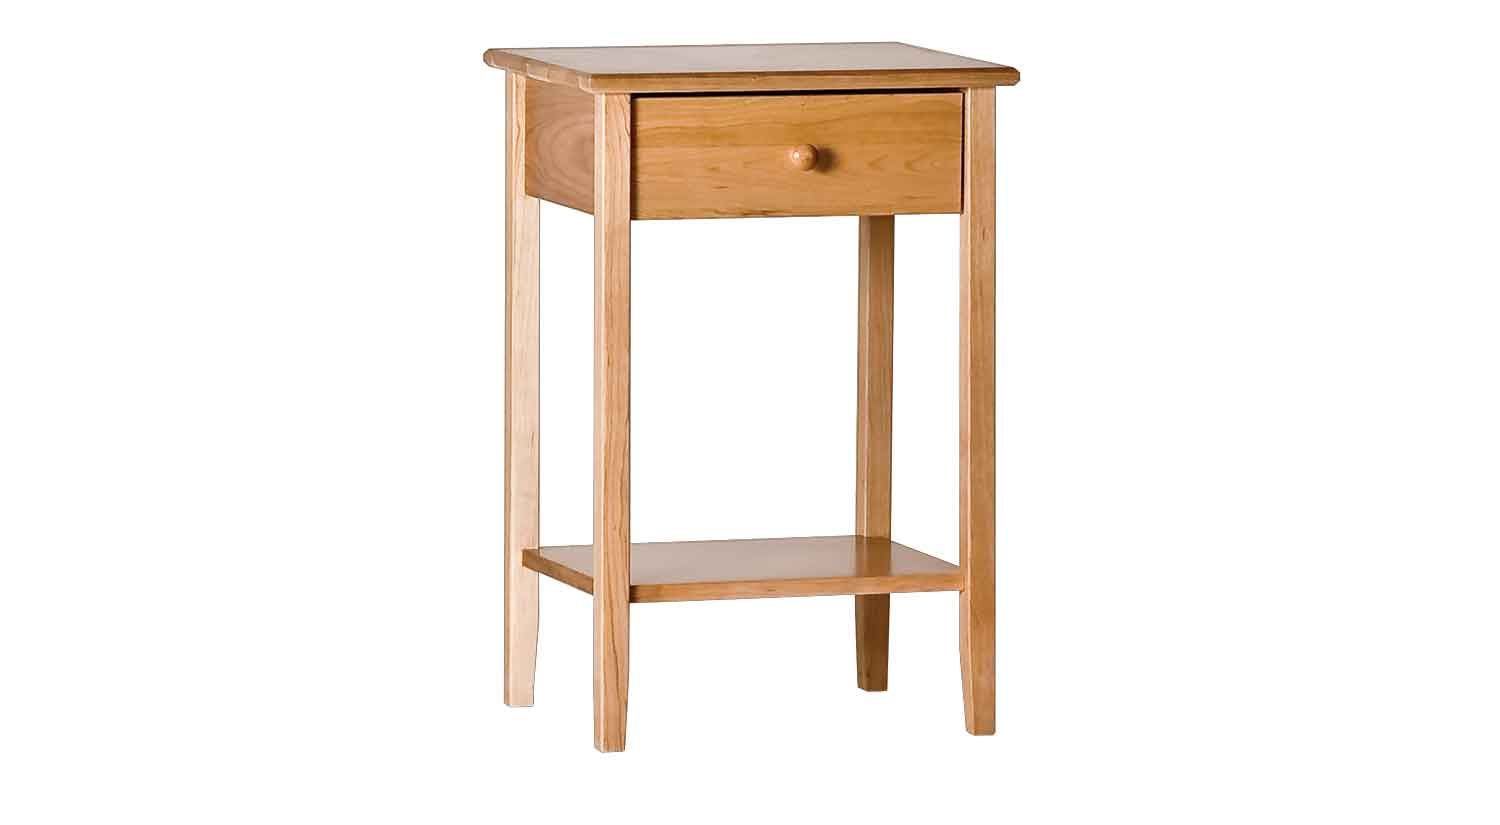 painting tall accent table stylish item for utilizing the narrow with drawer empty space farmhouse oak dining furniture target room chairs outdoor patio clearance threshold